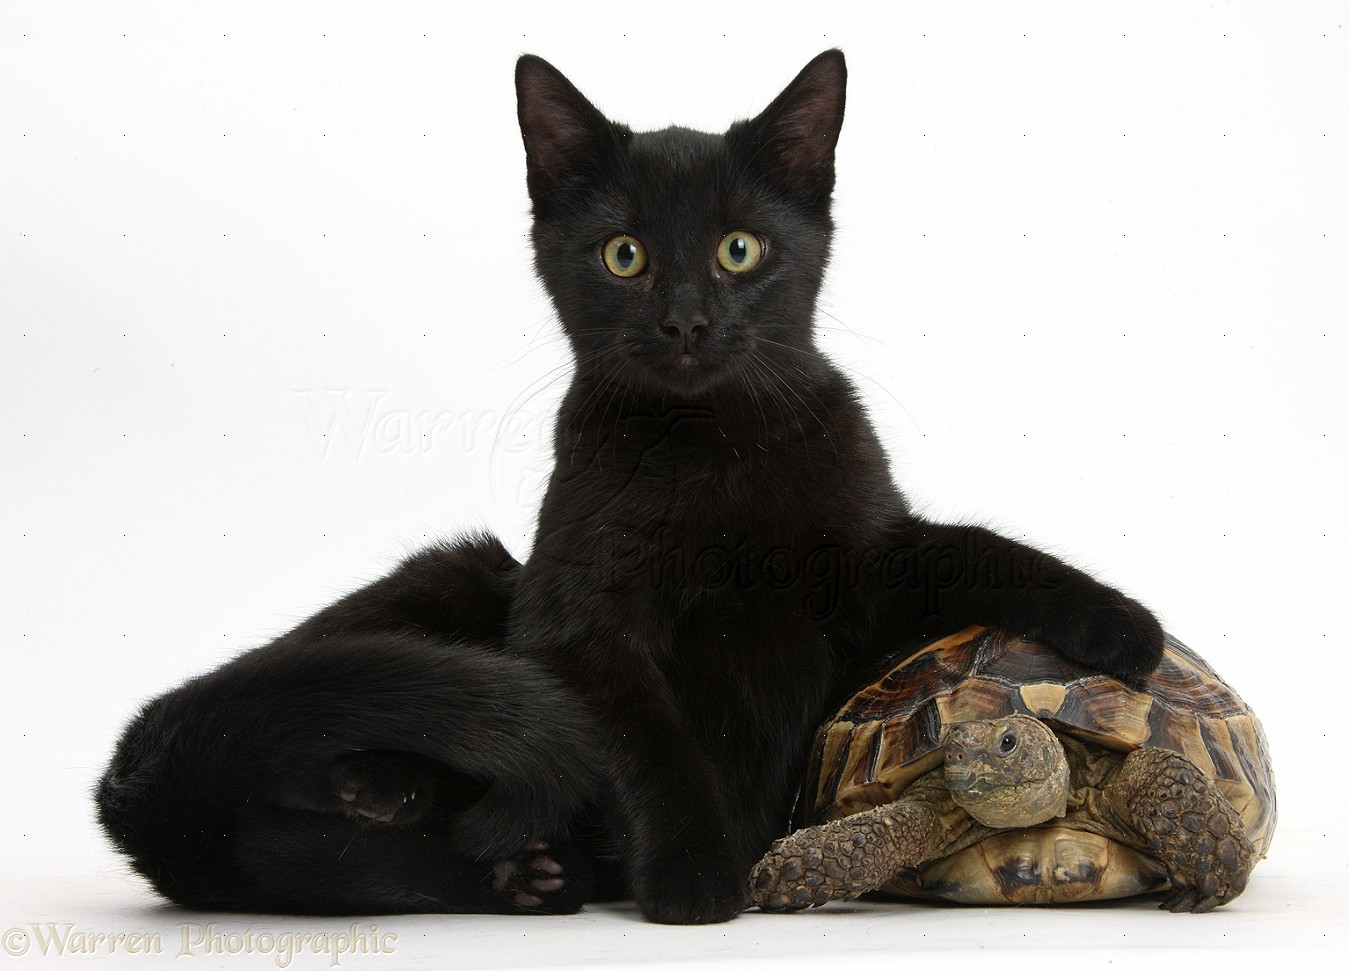 Black cat lounging on a tortoise photo - WP39070